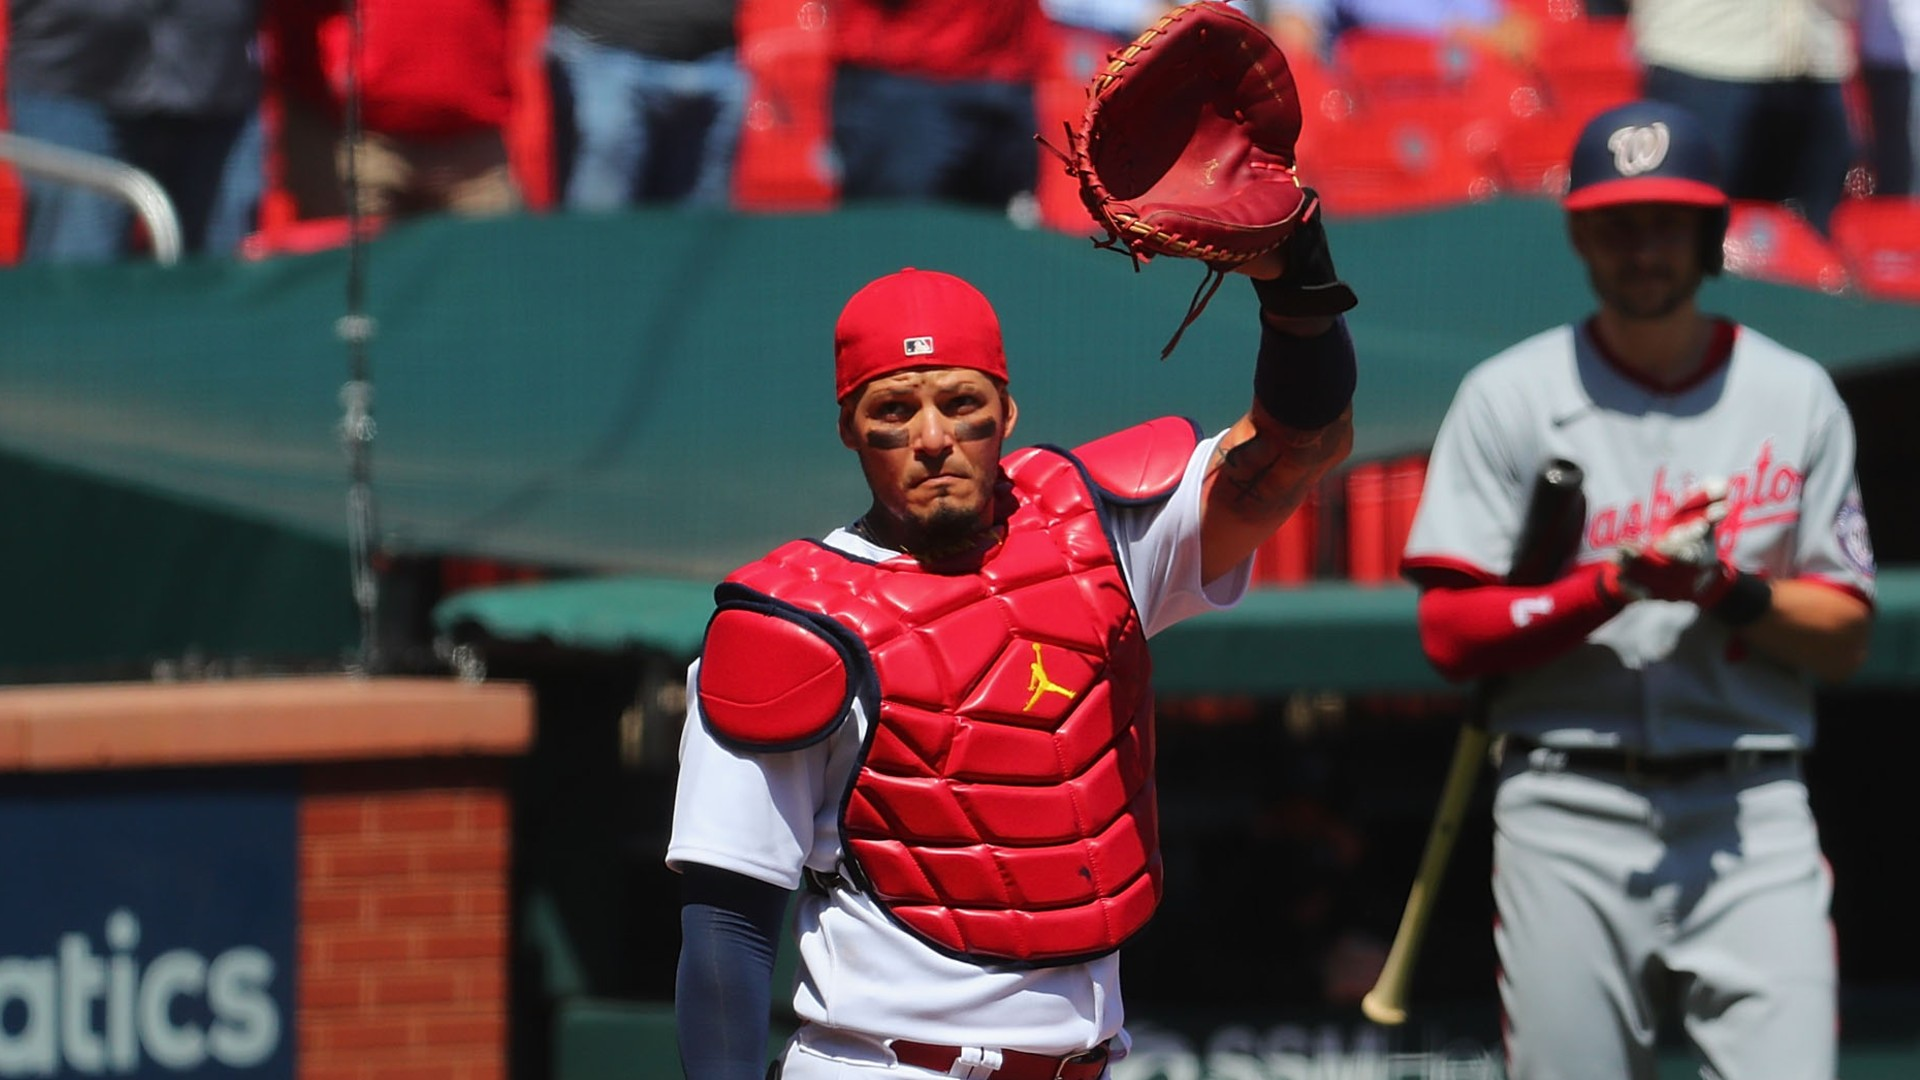 Yadier Molina has entered MLB's record books with 2,000 games caught with the Cardinals